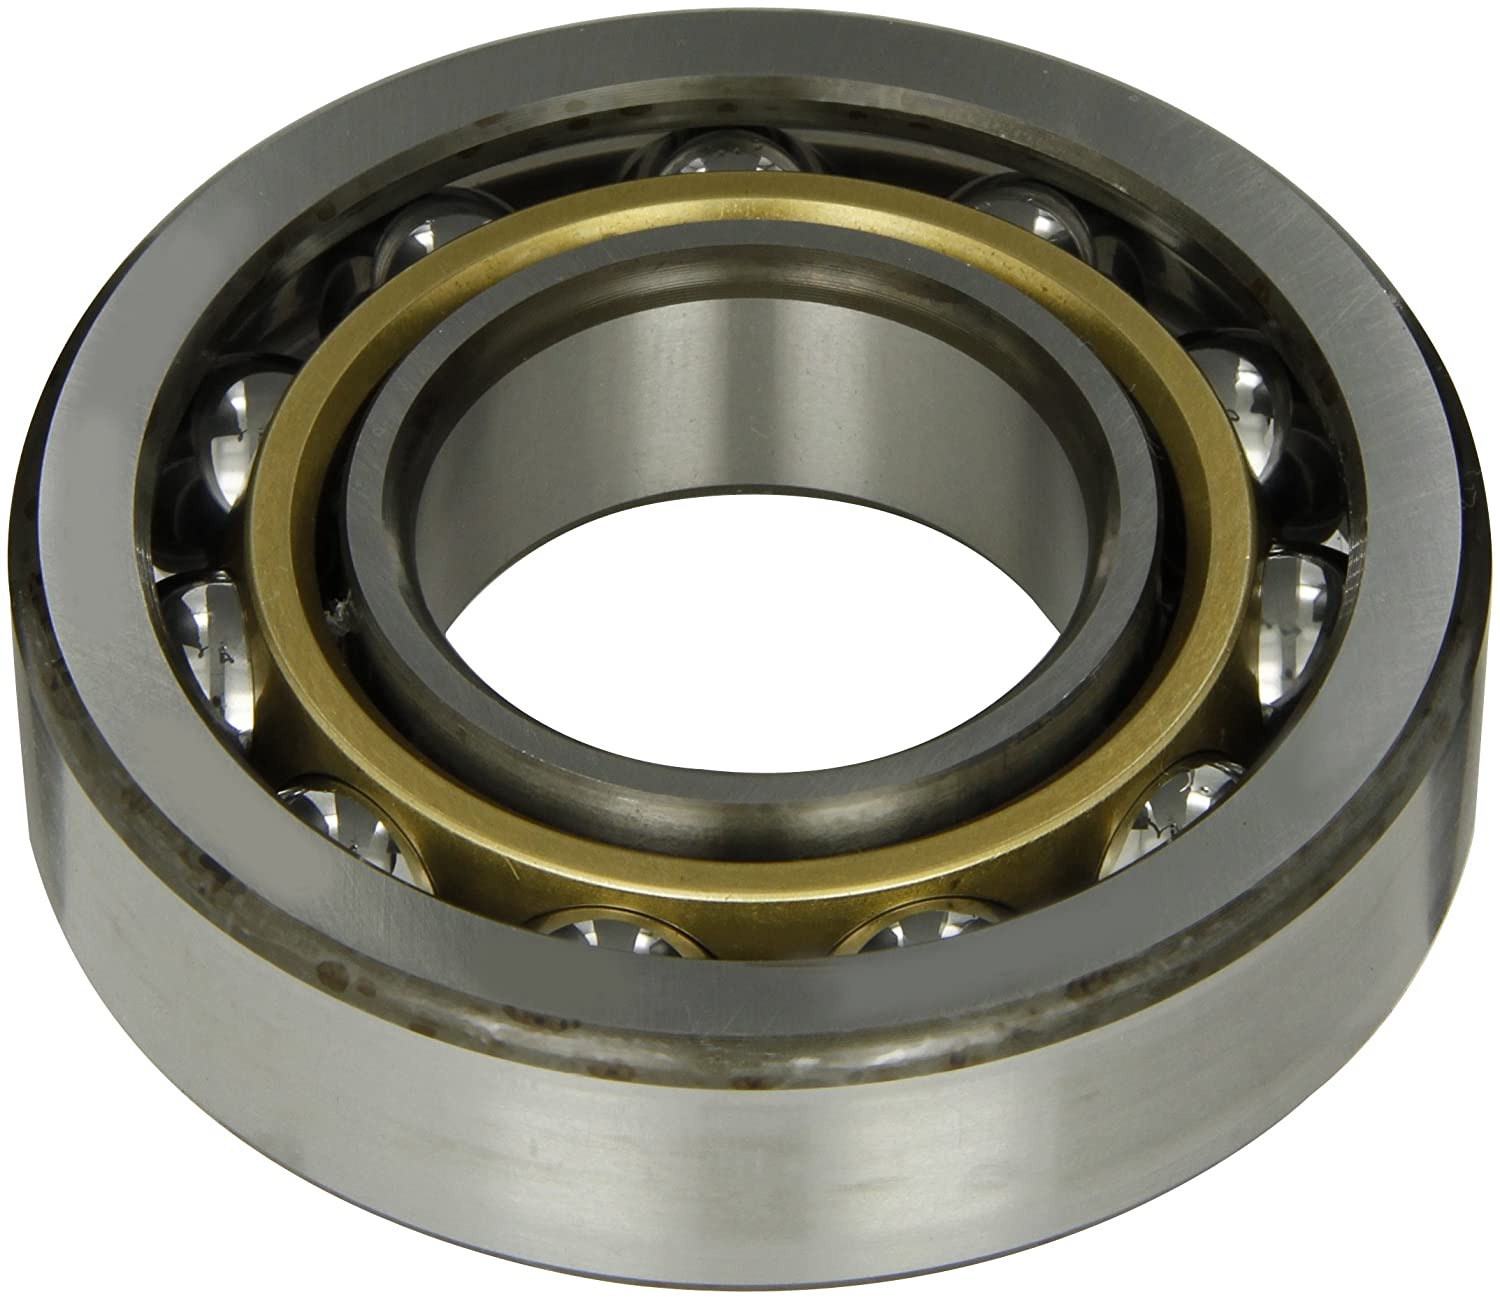 50mm Bore 11500lbf Static Load Capacity 27mm Width Normal Clearance 40/° Contact Angle 16700lbf Dynamic Load Capacity 110mm OD Open SKF 7310 BECBM Medium Series Angular Contact Bearing ABEC 1 Precision Brass Cage